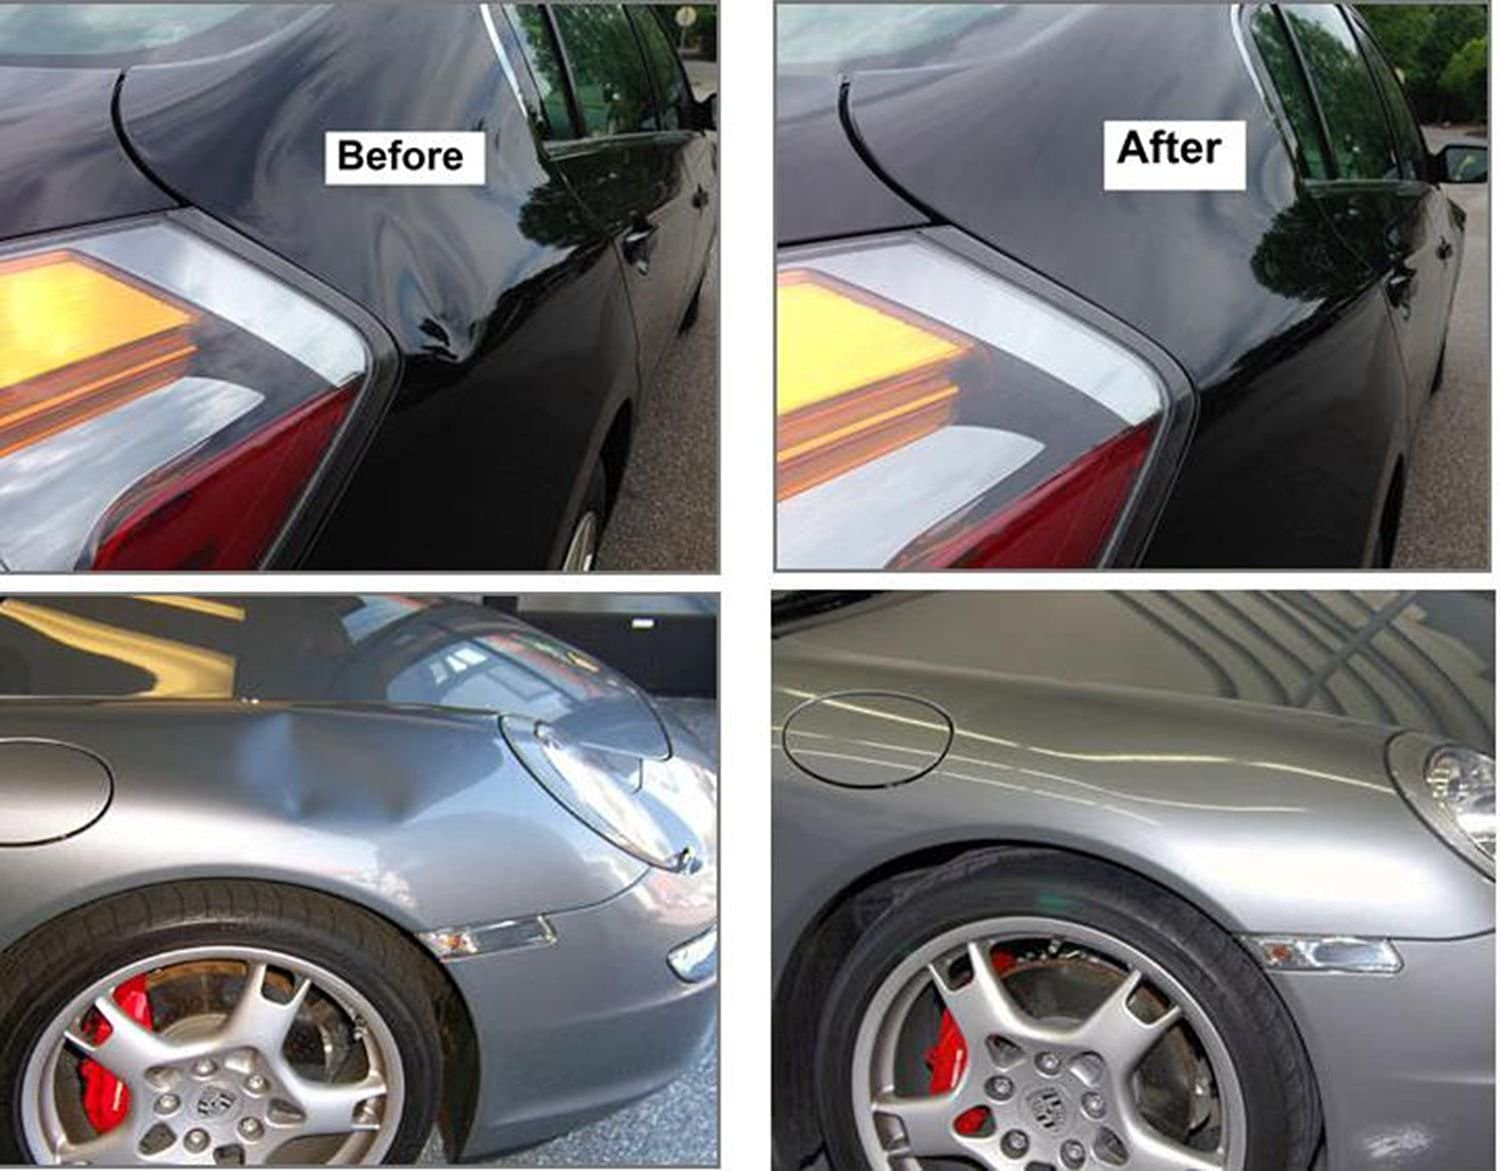 1Auto Car Body Paintless Dent Repair Dent Puller Dent Hammer Tap Down Dent Repair Rods Auto Body Dent Removal Tools  - buy with discount